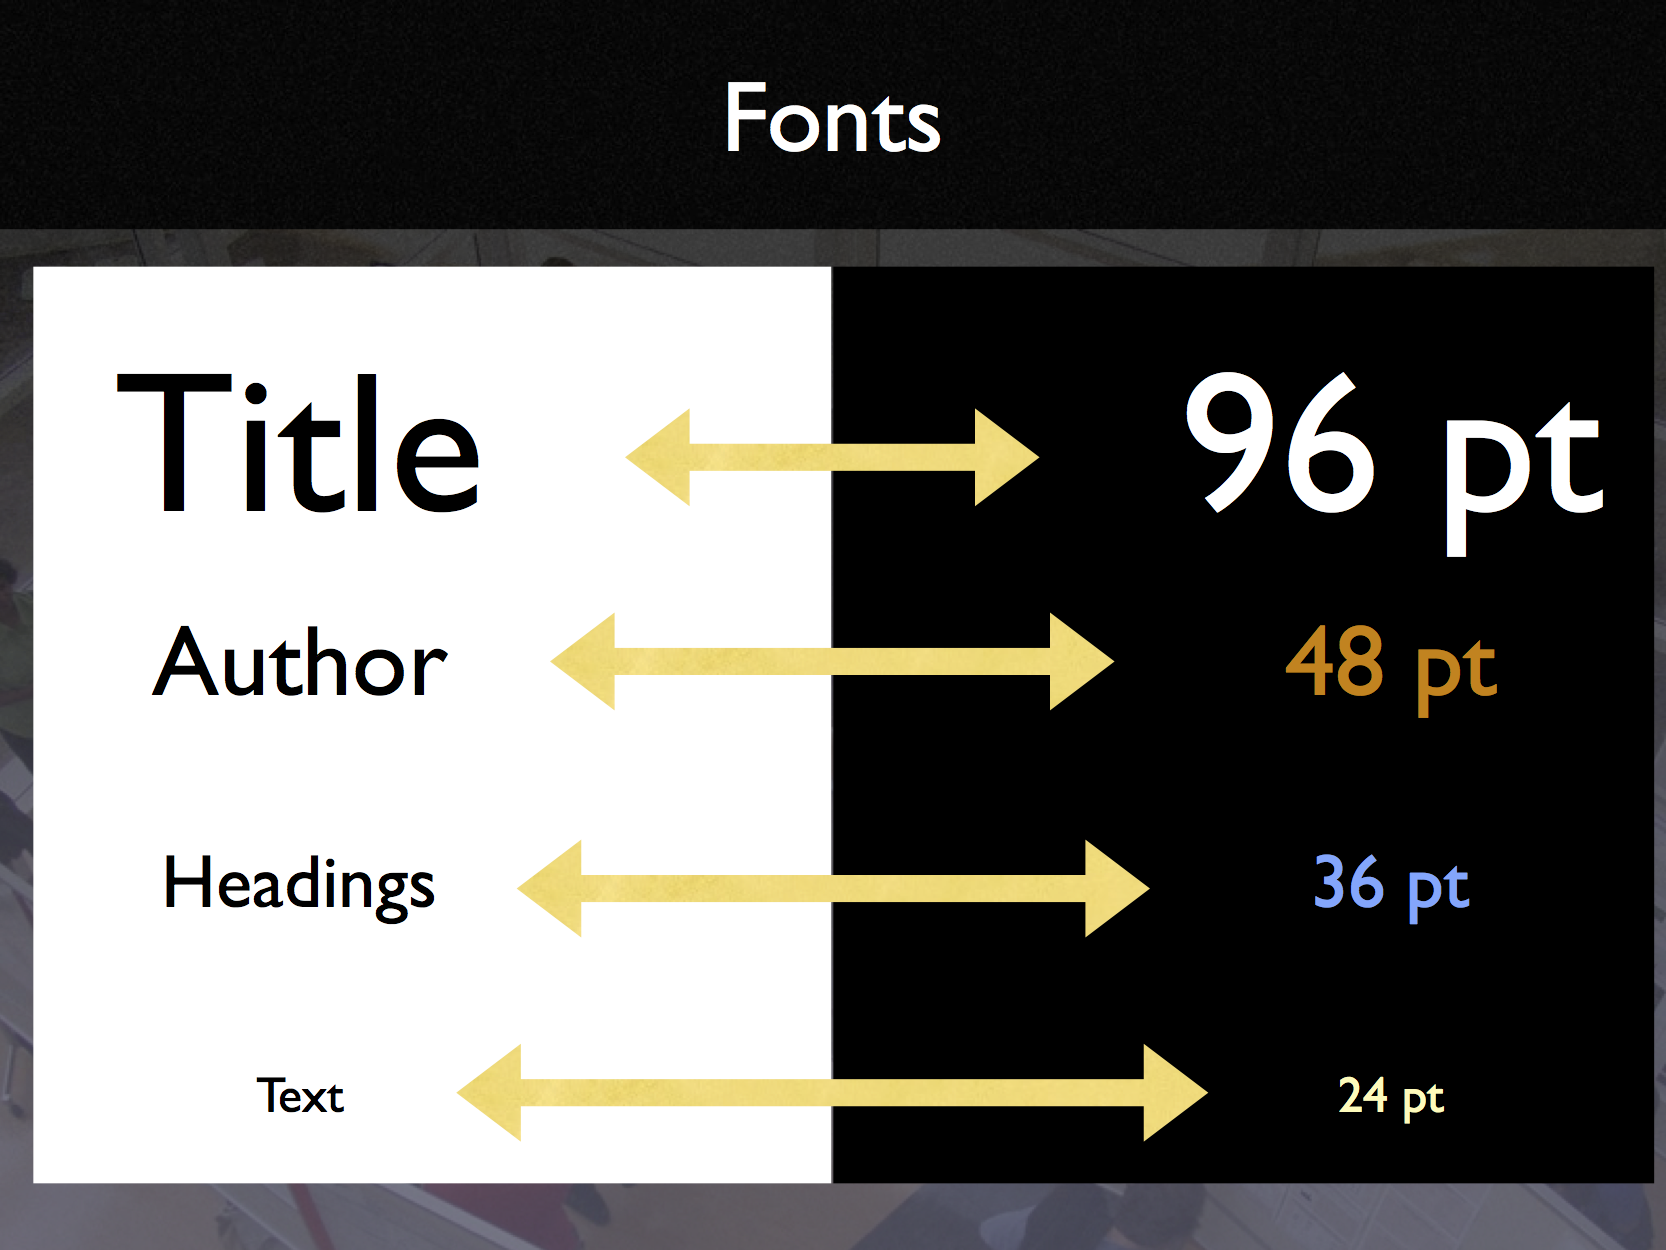 Poster design dimensions - Fonts